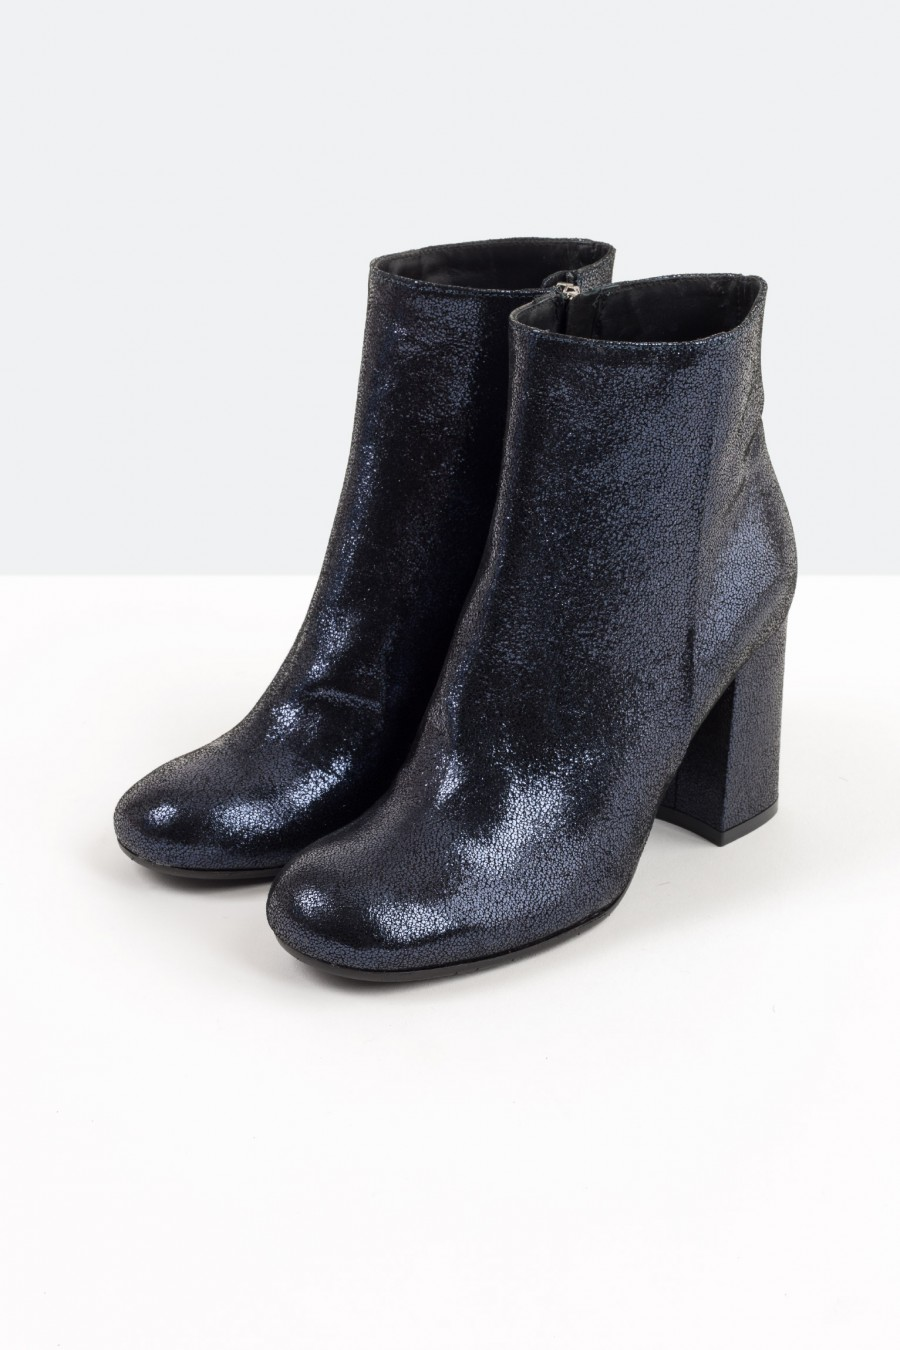 Metallic blue leather ankle boots